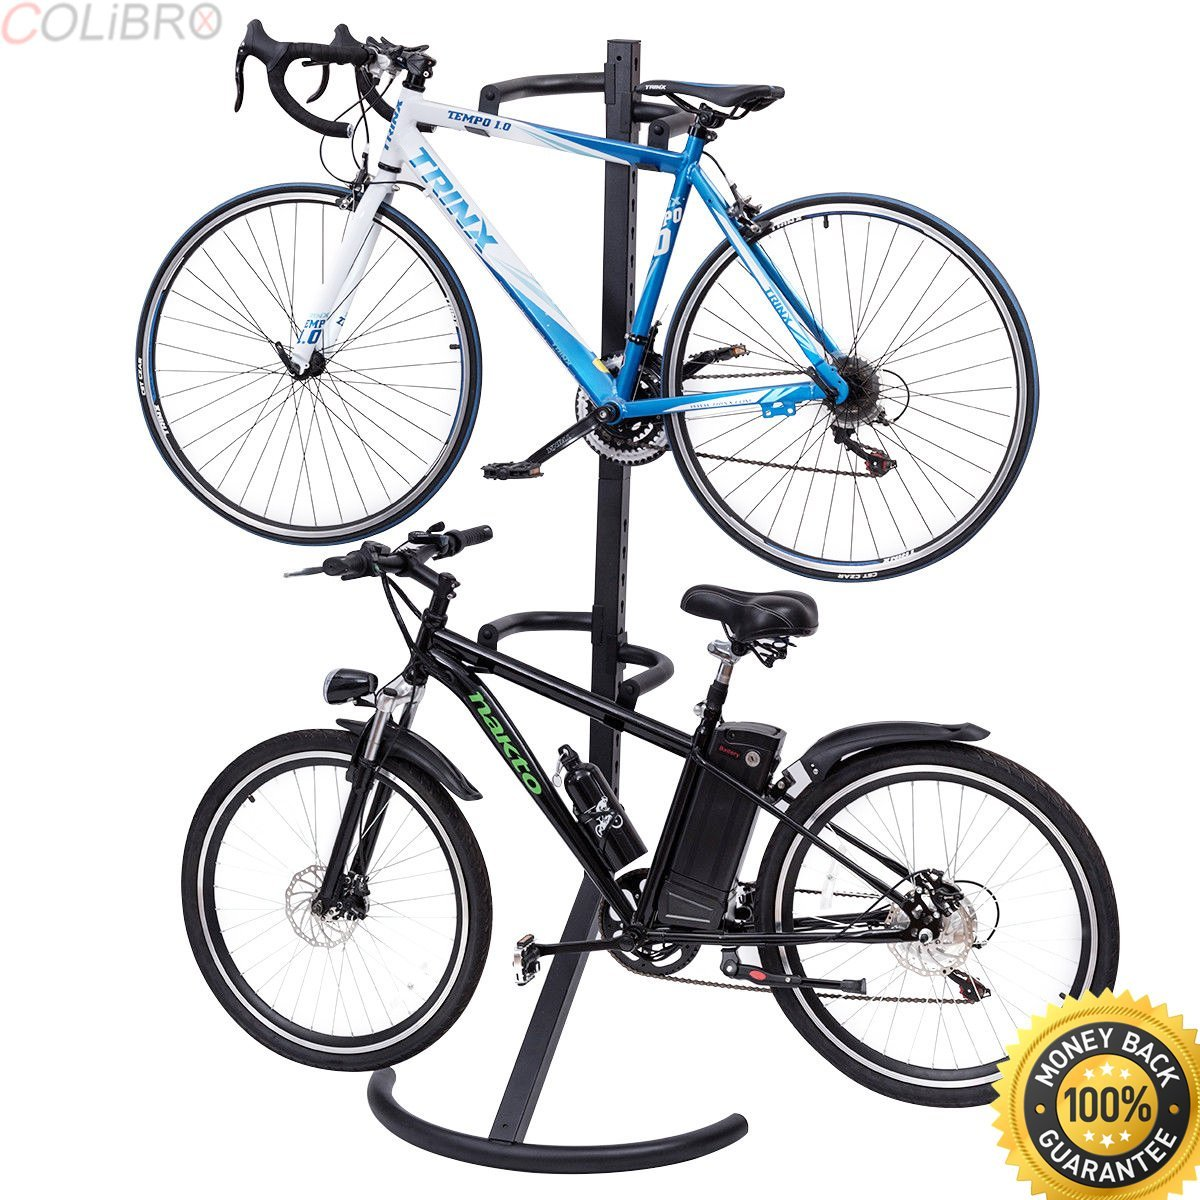 COLIBROX--Freestanding Gravity Bike Stand Two Bicycles Rack For Storage or Display. racor gravity bike stand. free standing bicycle rack. lifegear gravity bike stand. best two bike gravity stand.